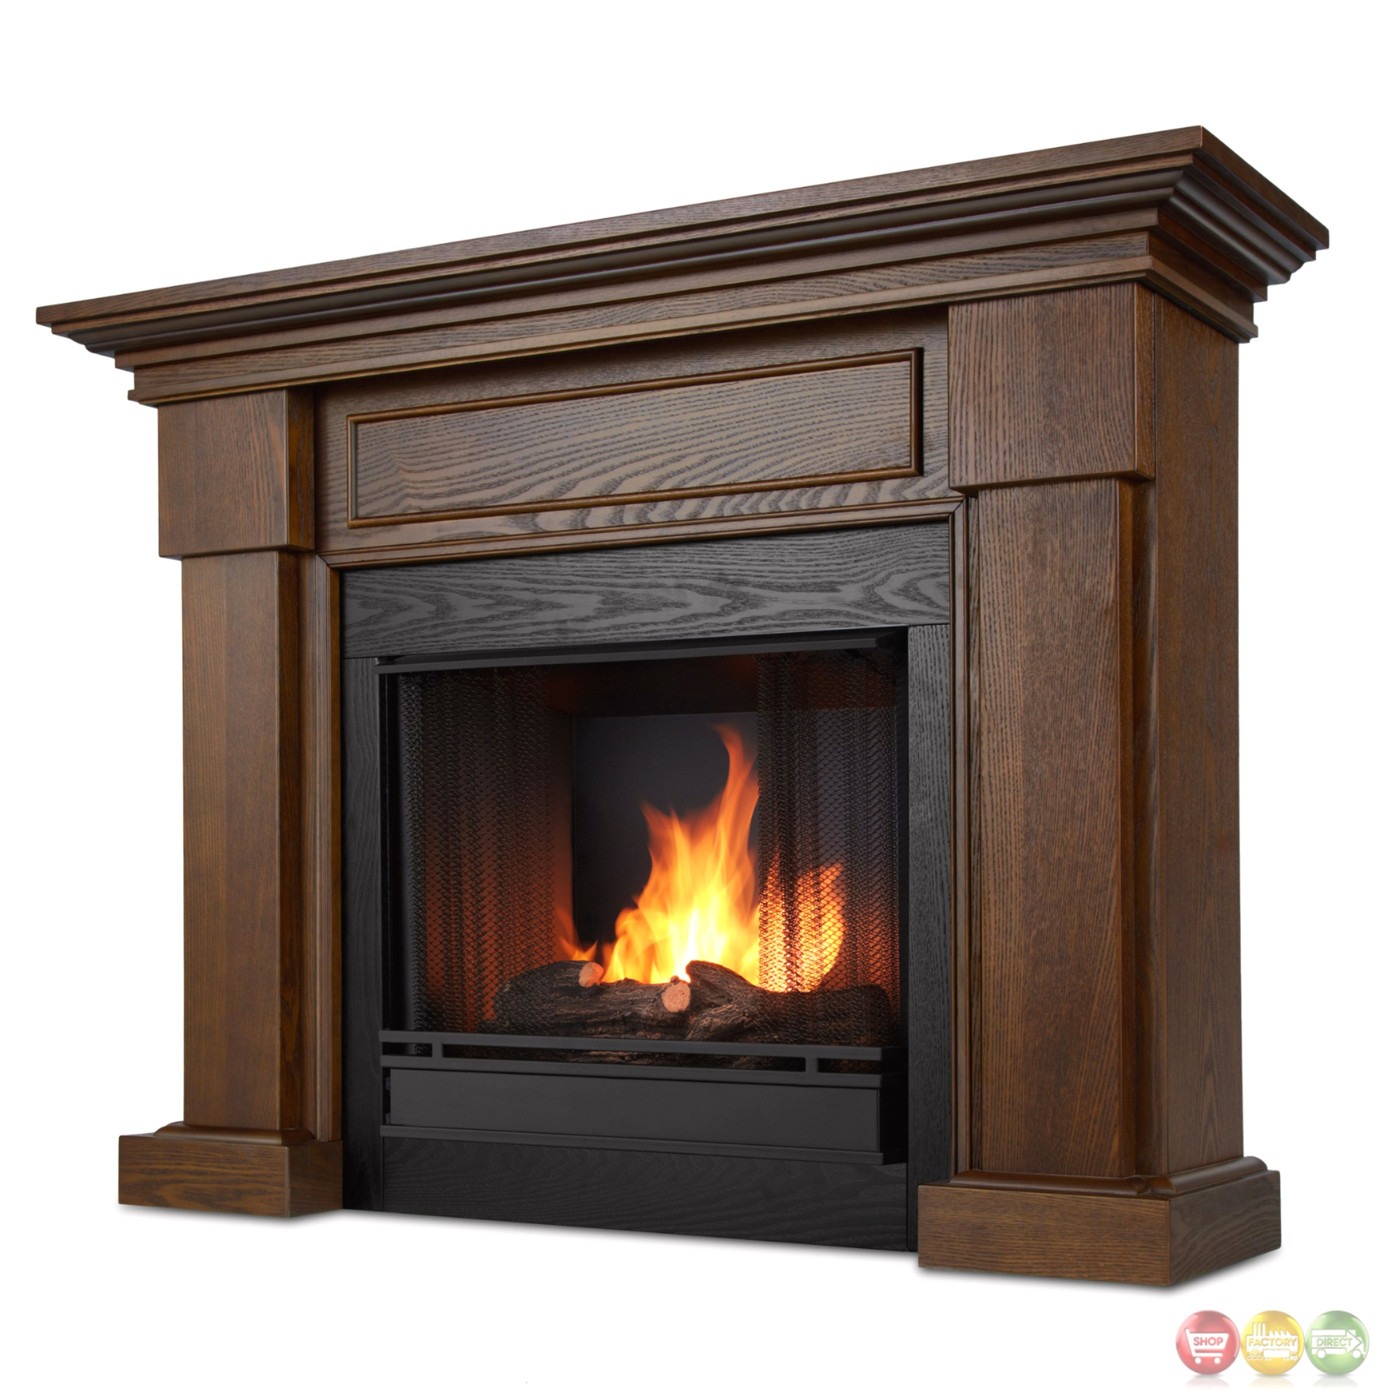 Ventless Fireplace: Hillcrest Ventless Gel Fuel Fireplace In Chestnut Oak With